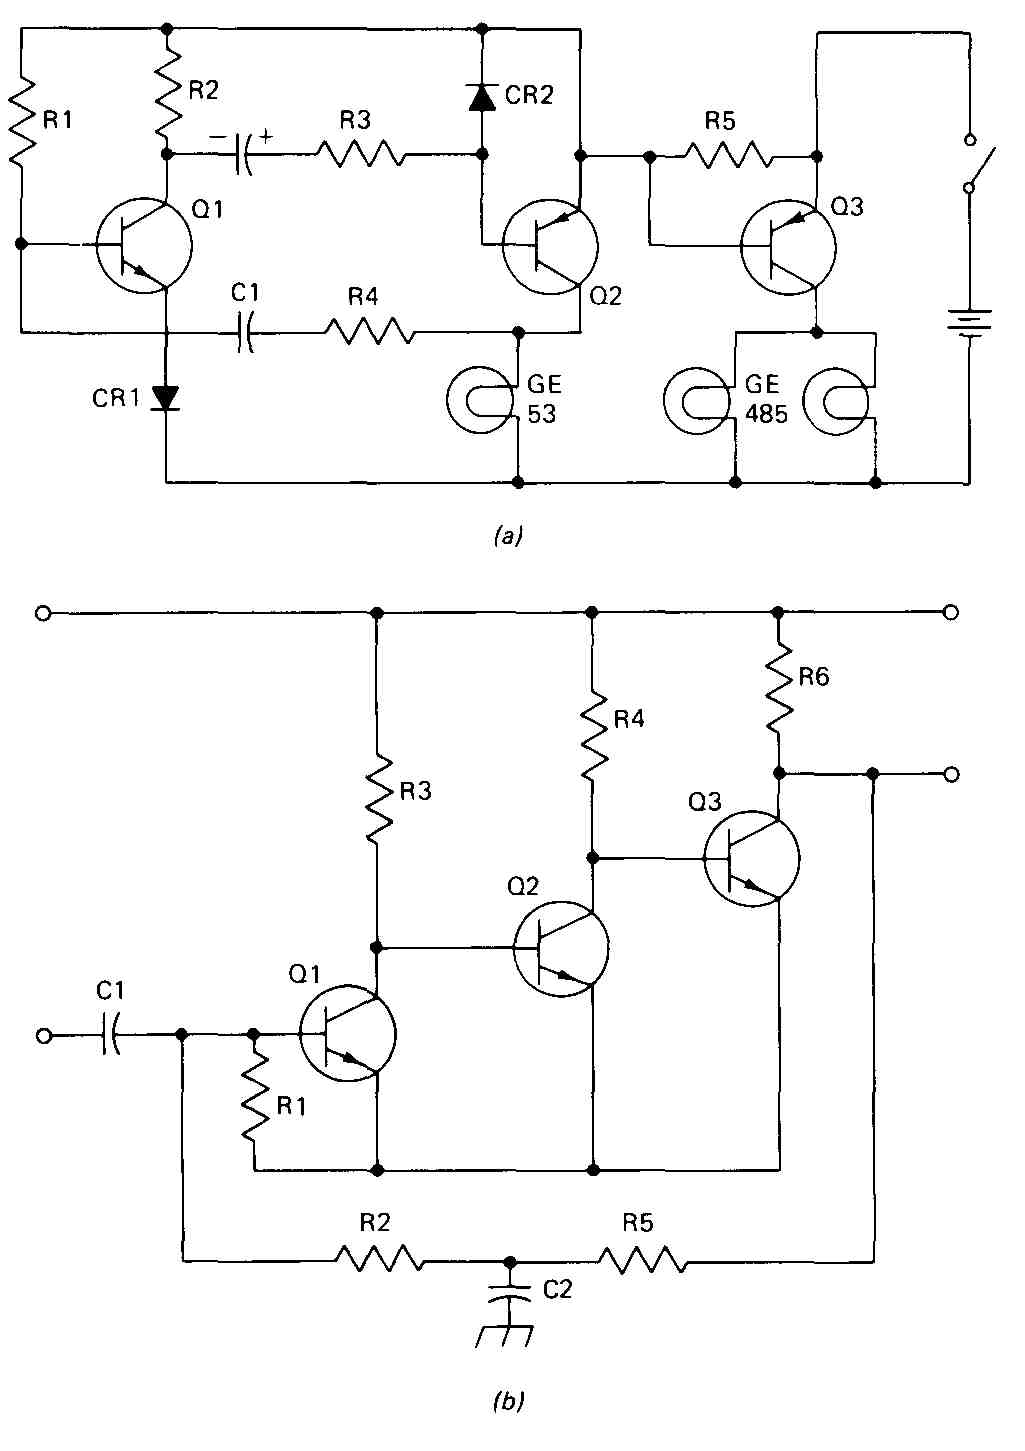 WRG-3746] Electronic Circuit Diagrams